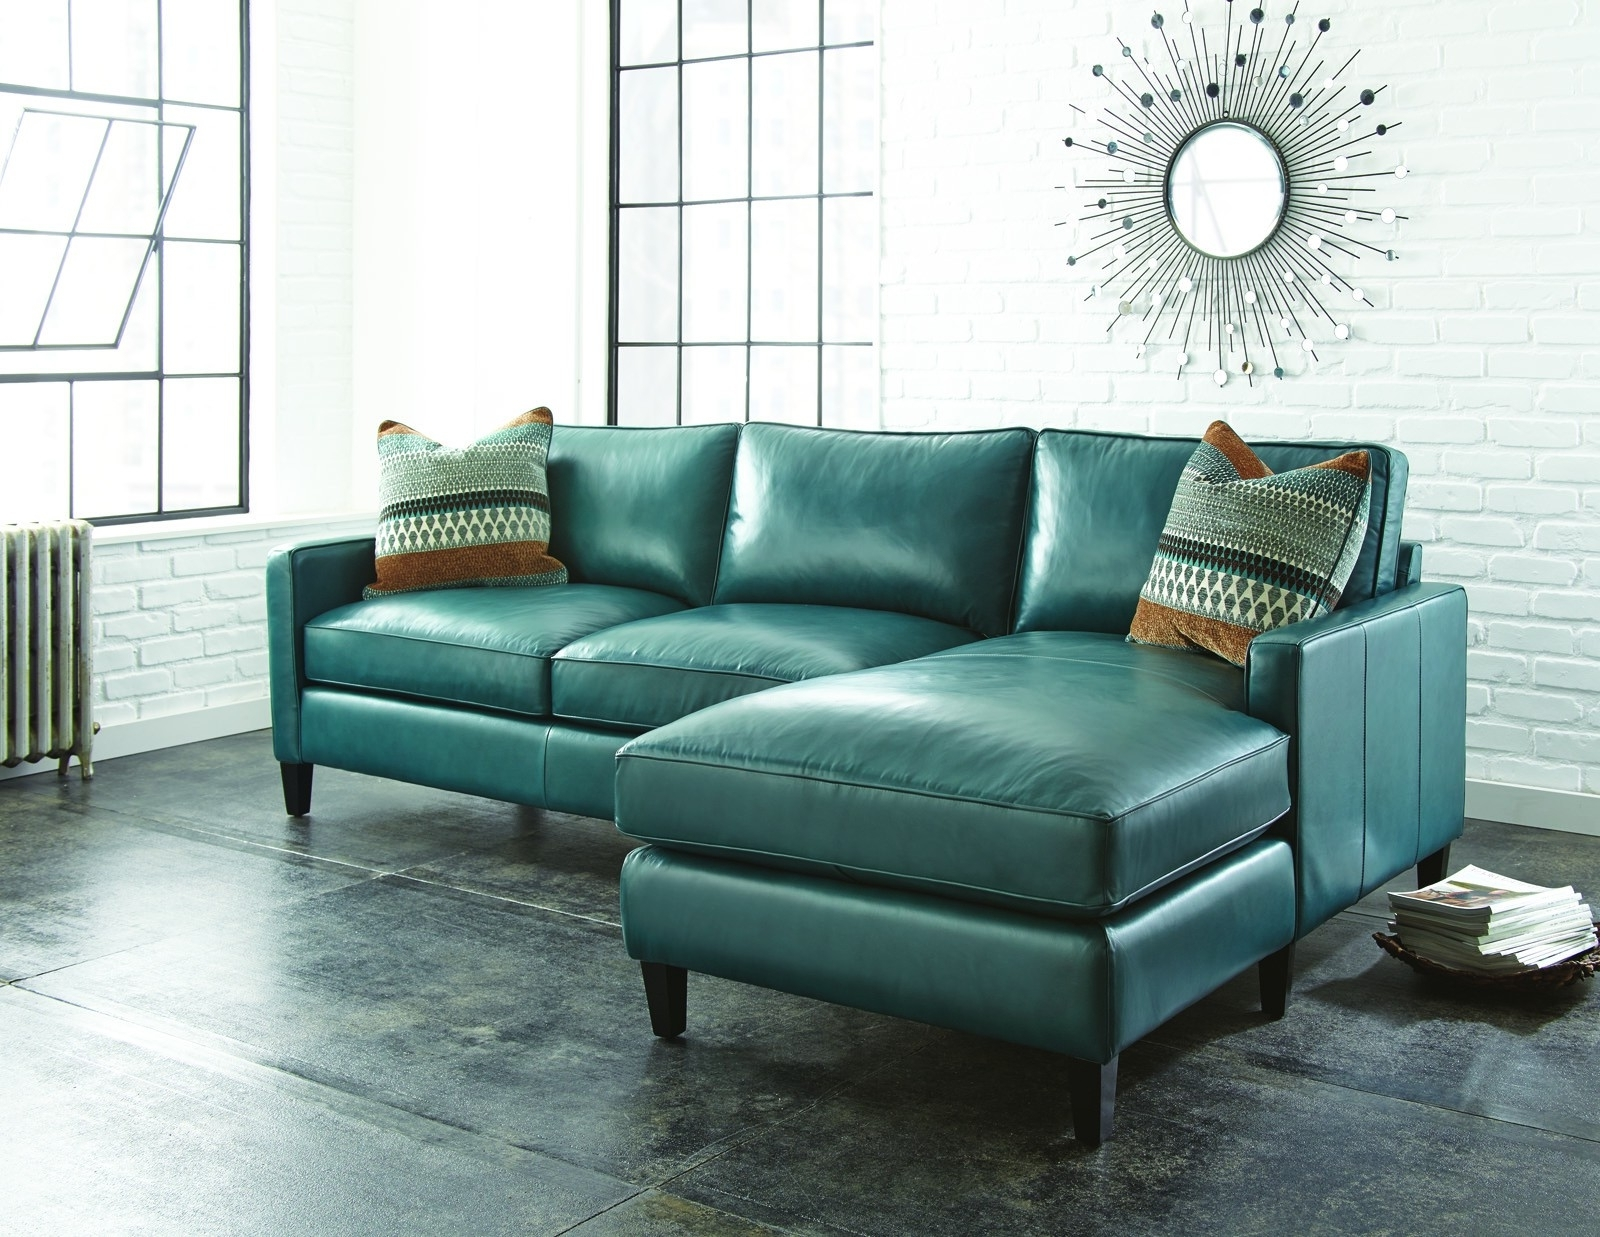 Well Known Green Sectional Sofas With Chaise For New Ideas Green Leather Sectional Sofa And Modern Green Leather (View 19 of 20)